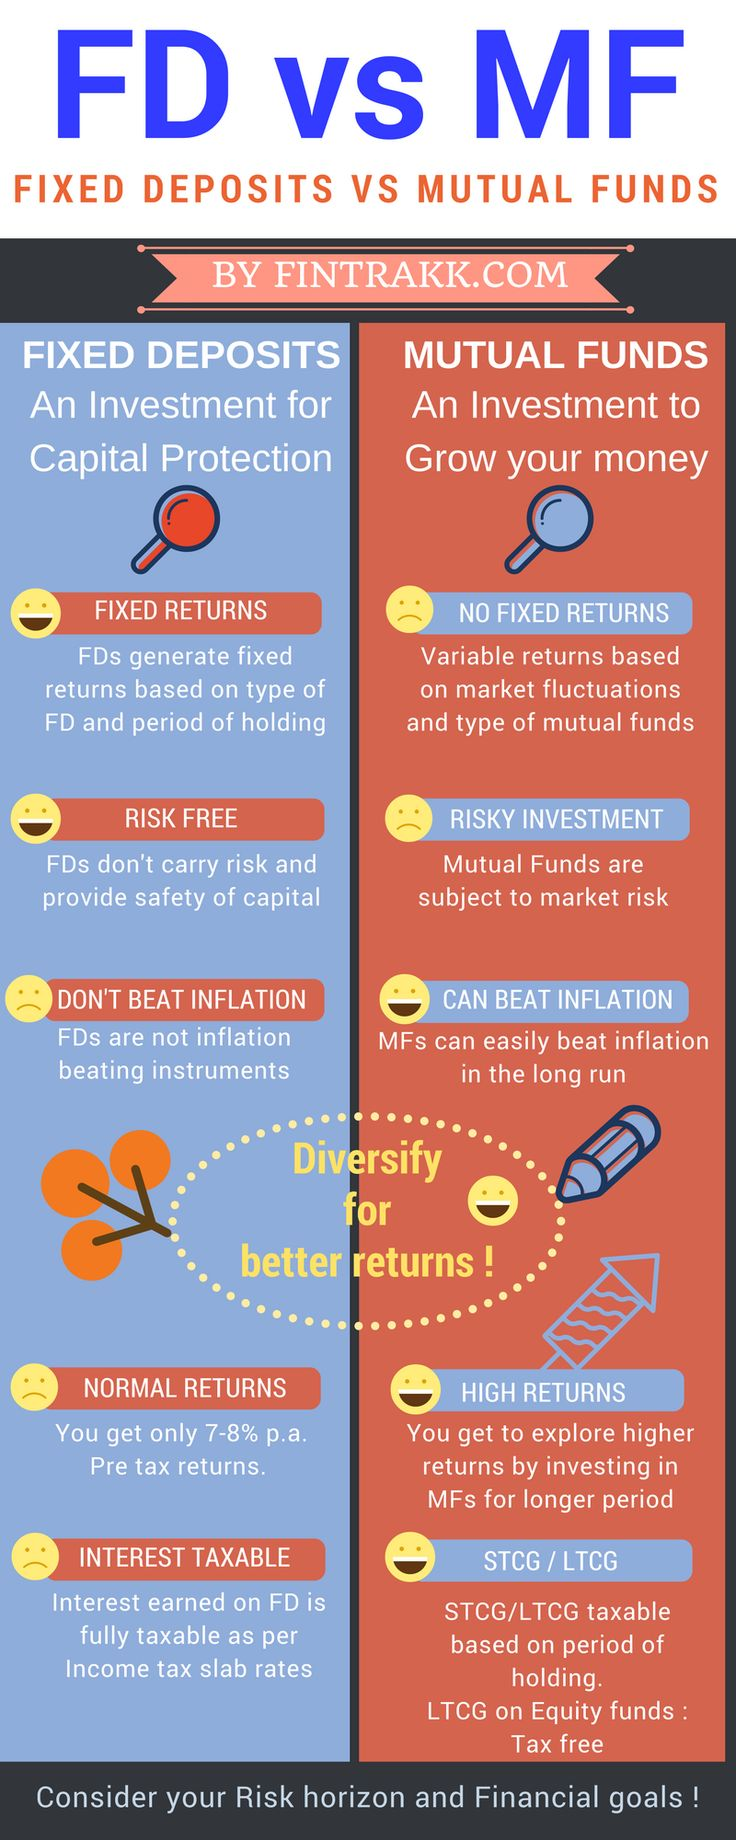 FD vs MF,FD vs mutual fund Infographic,Mutual fund infographic,FD or mutual funds,Financial Planning,investing infographic